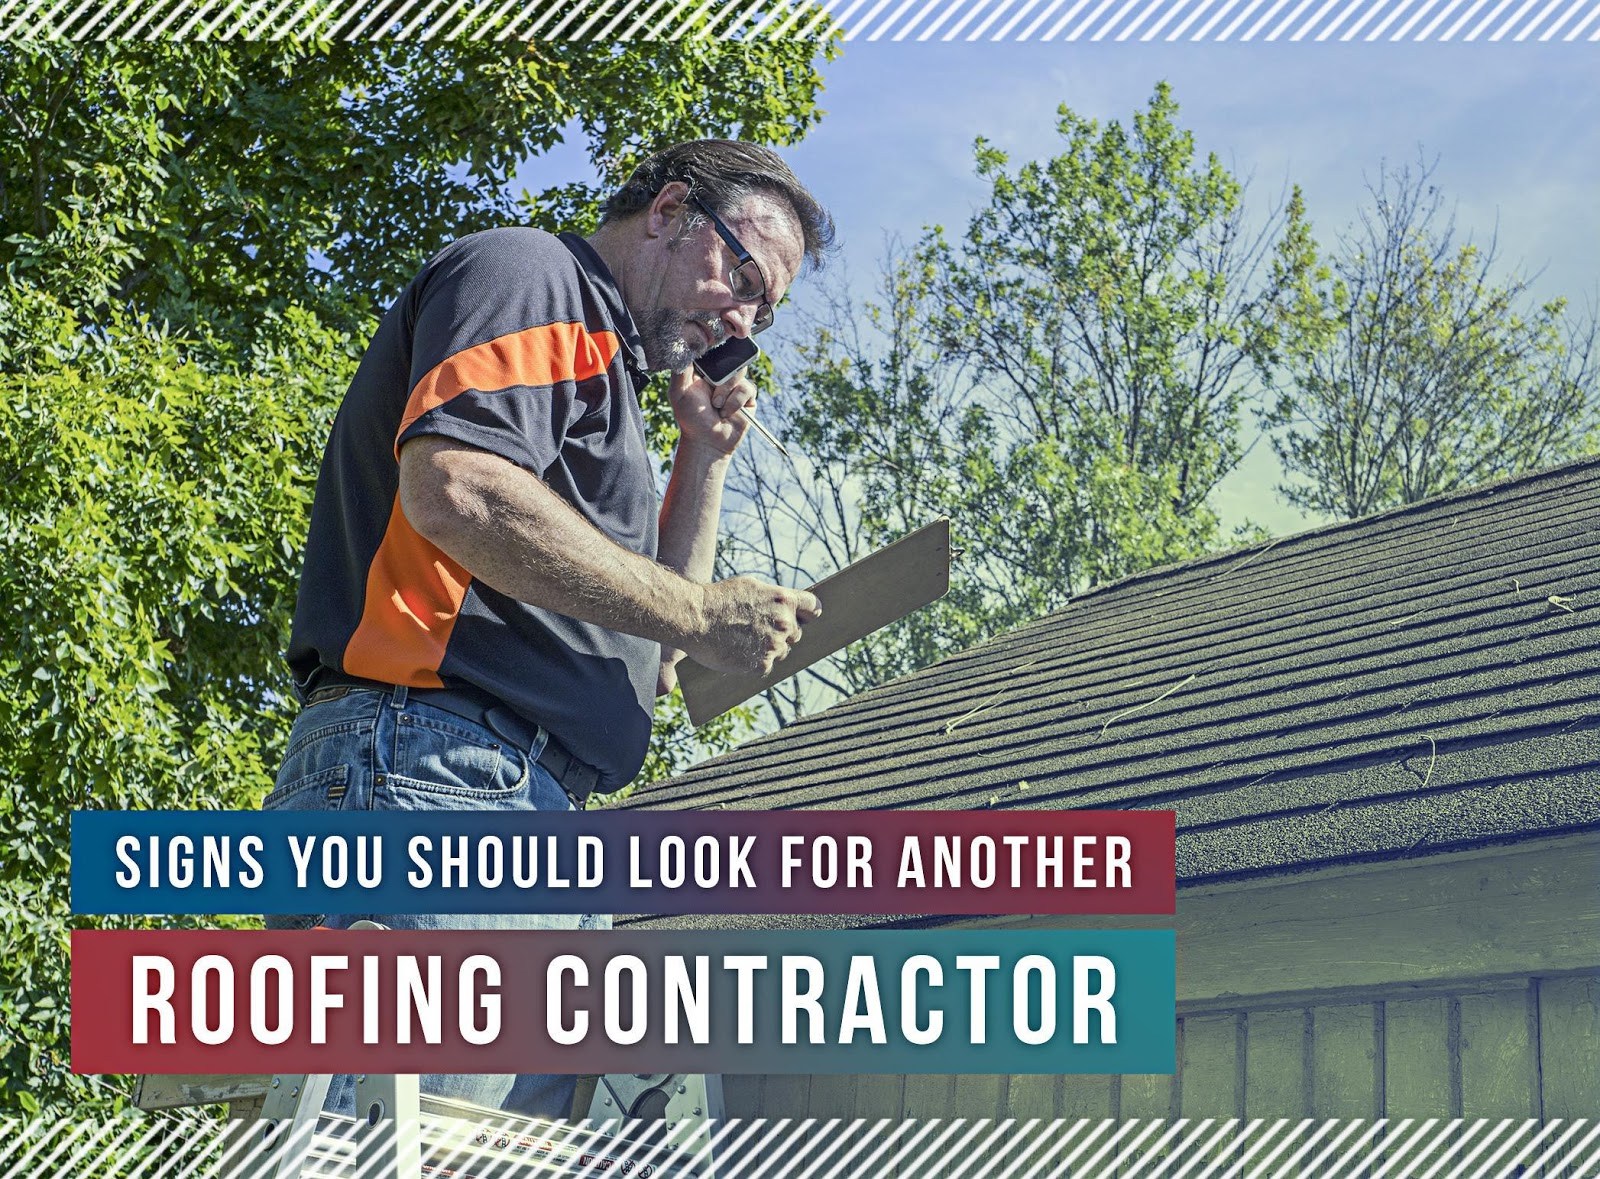 Signs You Should Look for Another Roofing Contractor